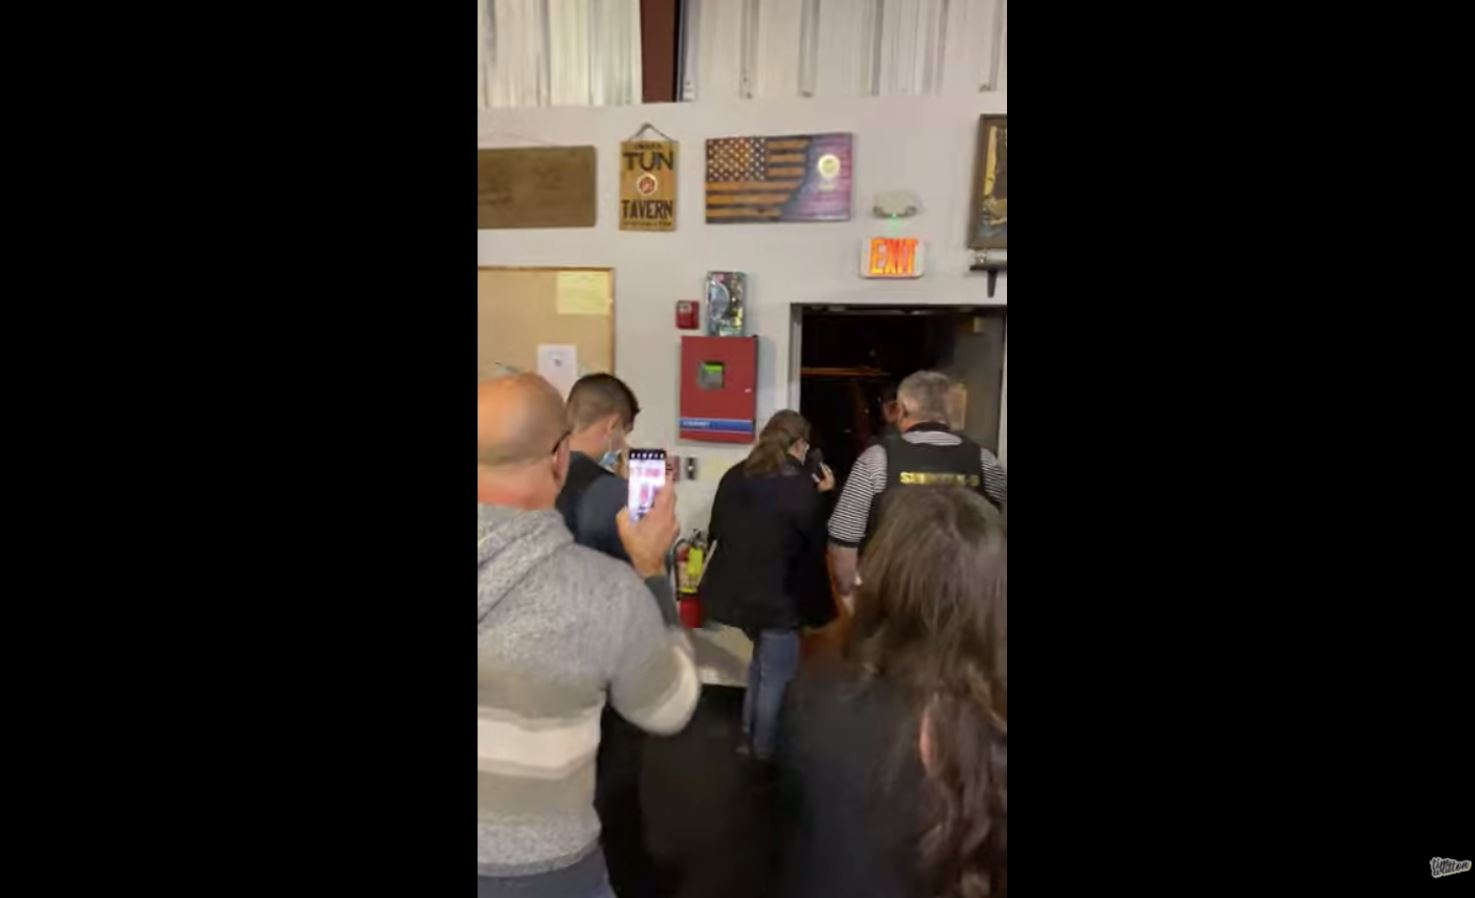 Watch as NY Business Owners Stand Up to Cuomo's COVID Restrictions, Chase Agents Out of Building